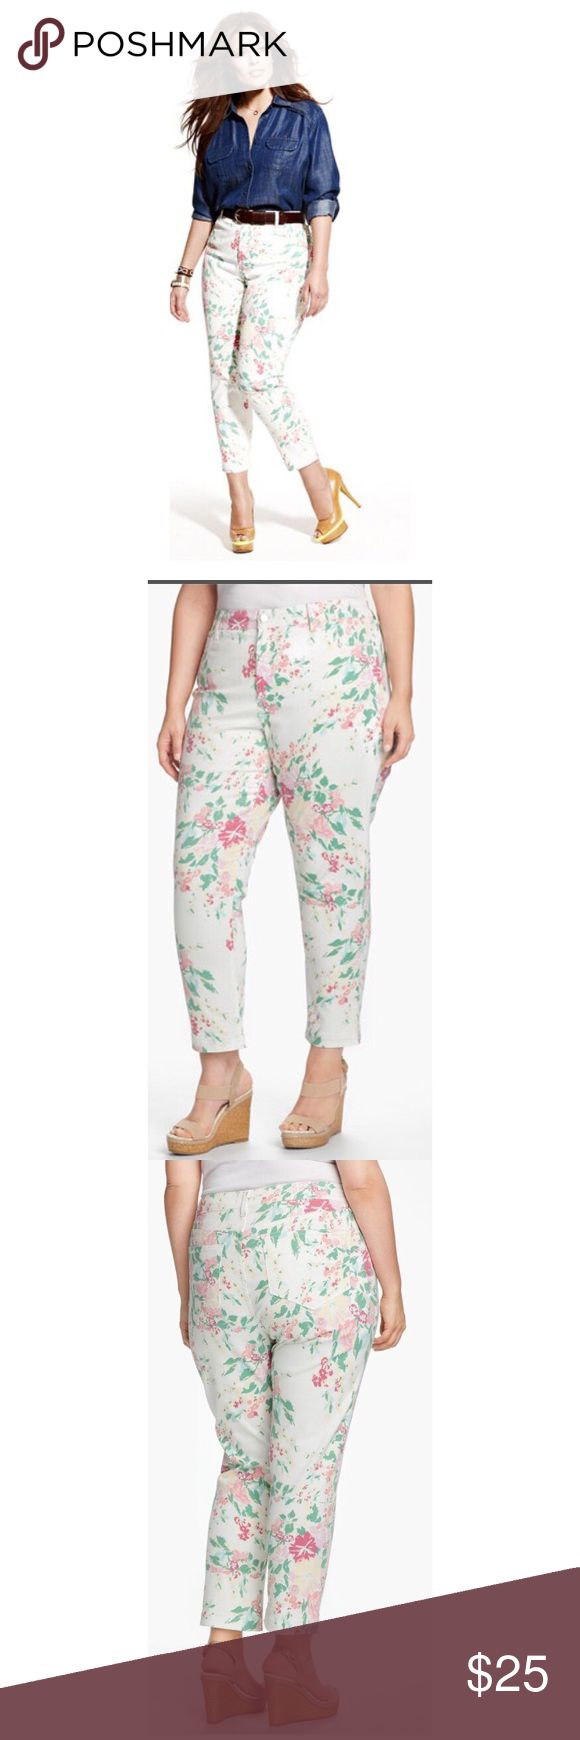 NYDJ 'Audrey' Floral Jeans A bouquet of pastel blossoms graces slim stretch-denim jeans styled with a straight-leg silhouette and ankle-grazing length for versatile wear. Exclusive lift-tuck technology helps flatten the tummy and lift  Zip fly with button closure. Five-pocket style. Cotton/spandex; machine wash. By NYDJ; made in the USA. Size 10 NYDJ Jeans